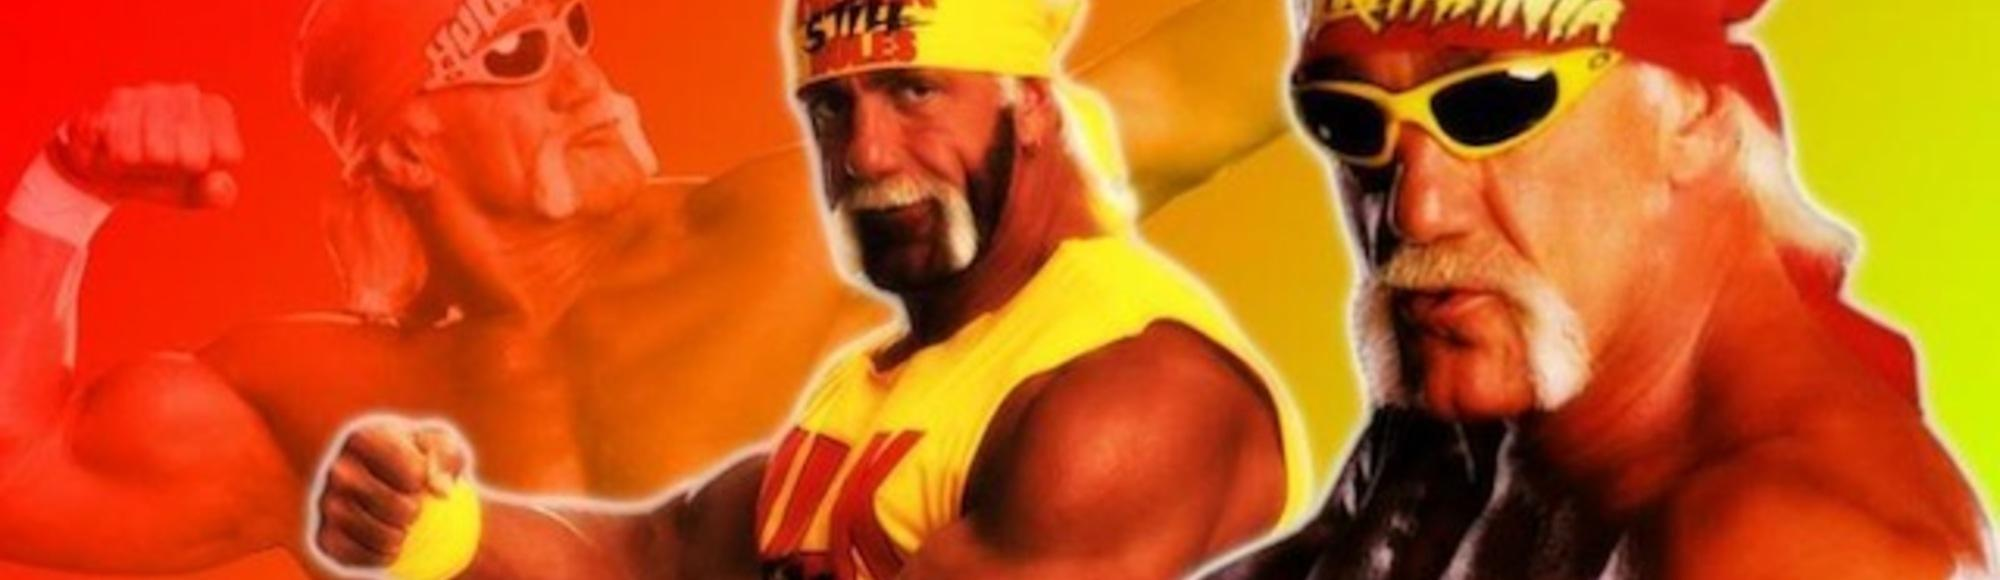 The Theological Consequences of Seeing Hulk Hogan's Penis